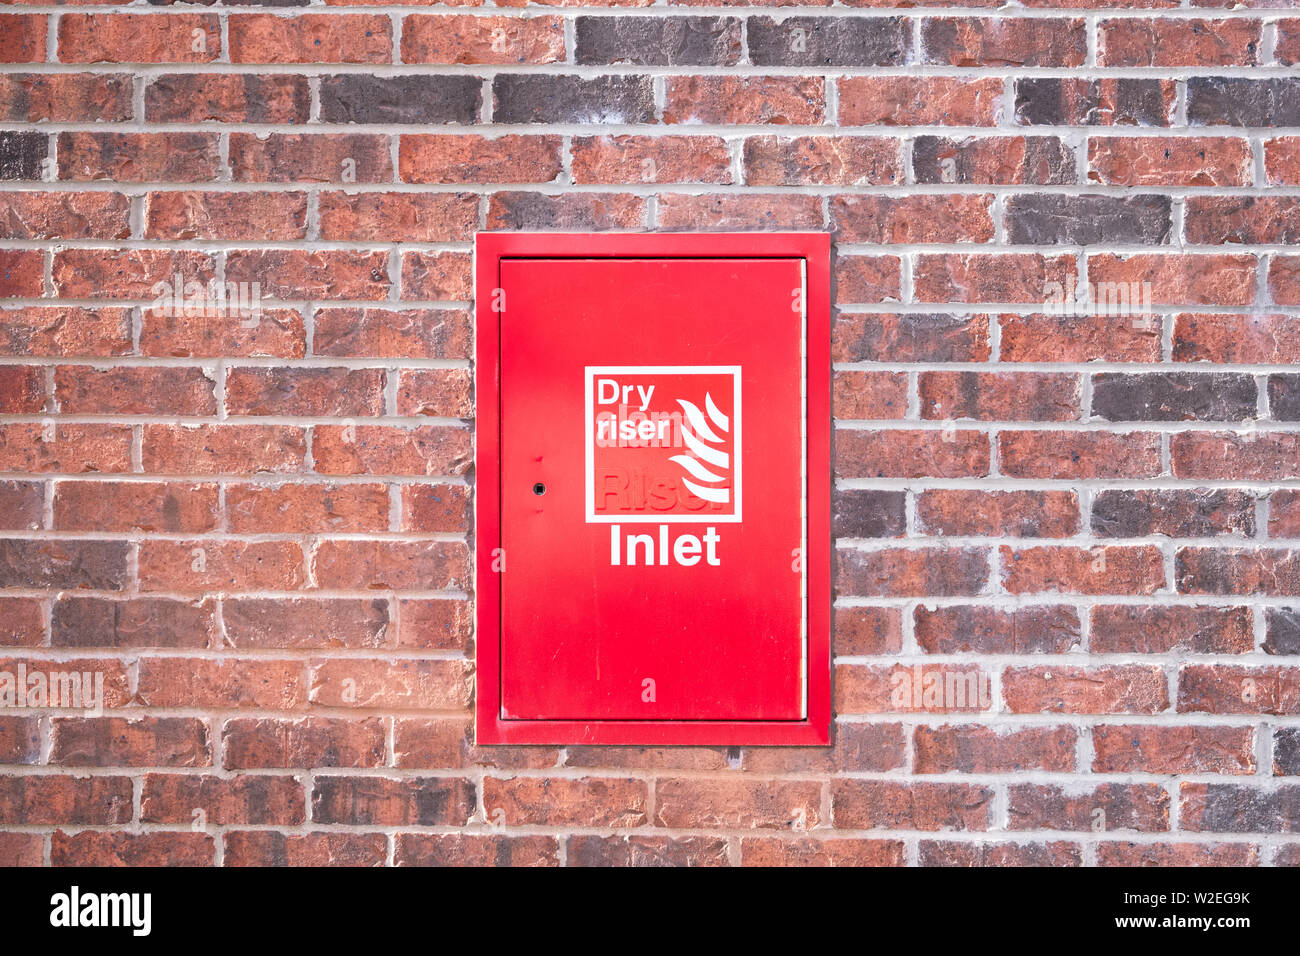 Dry riser red inlet box cover - Stock Image